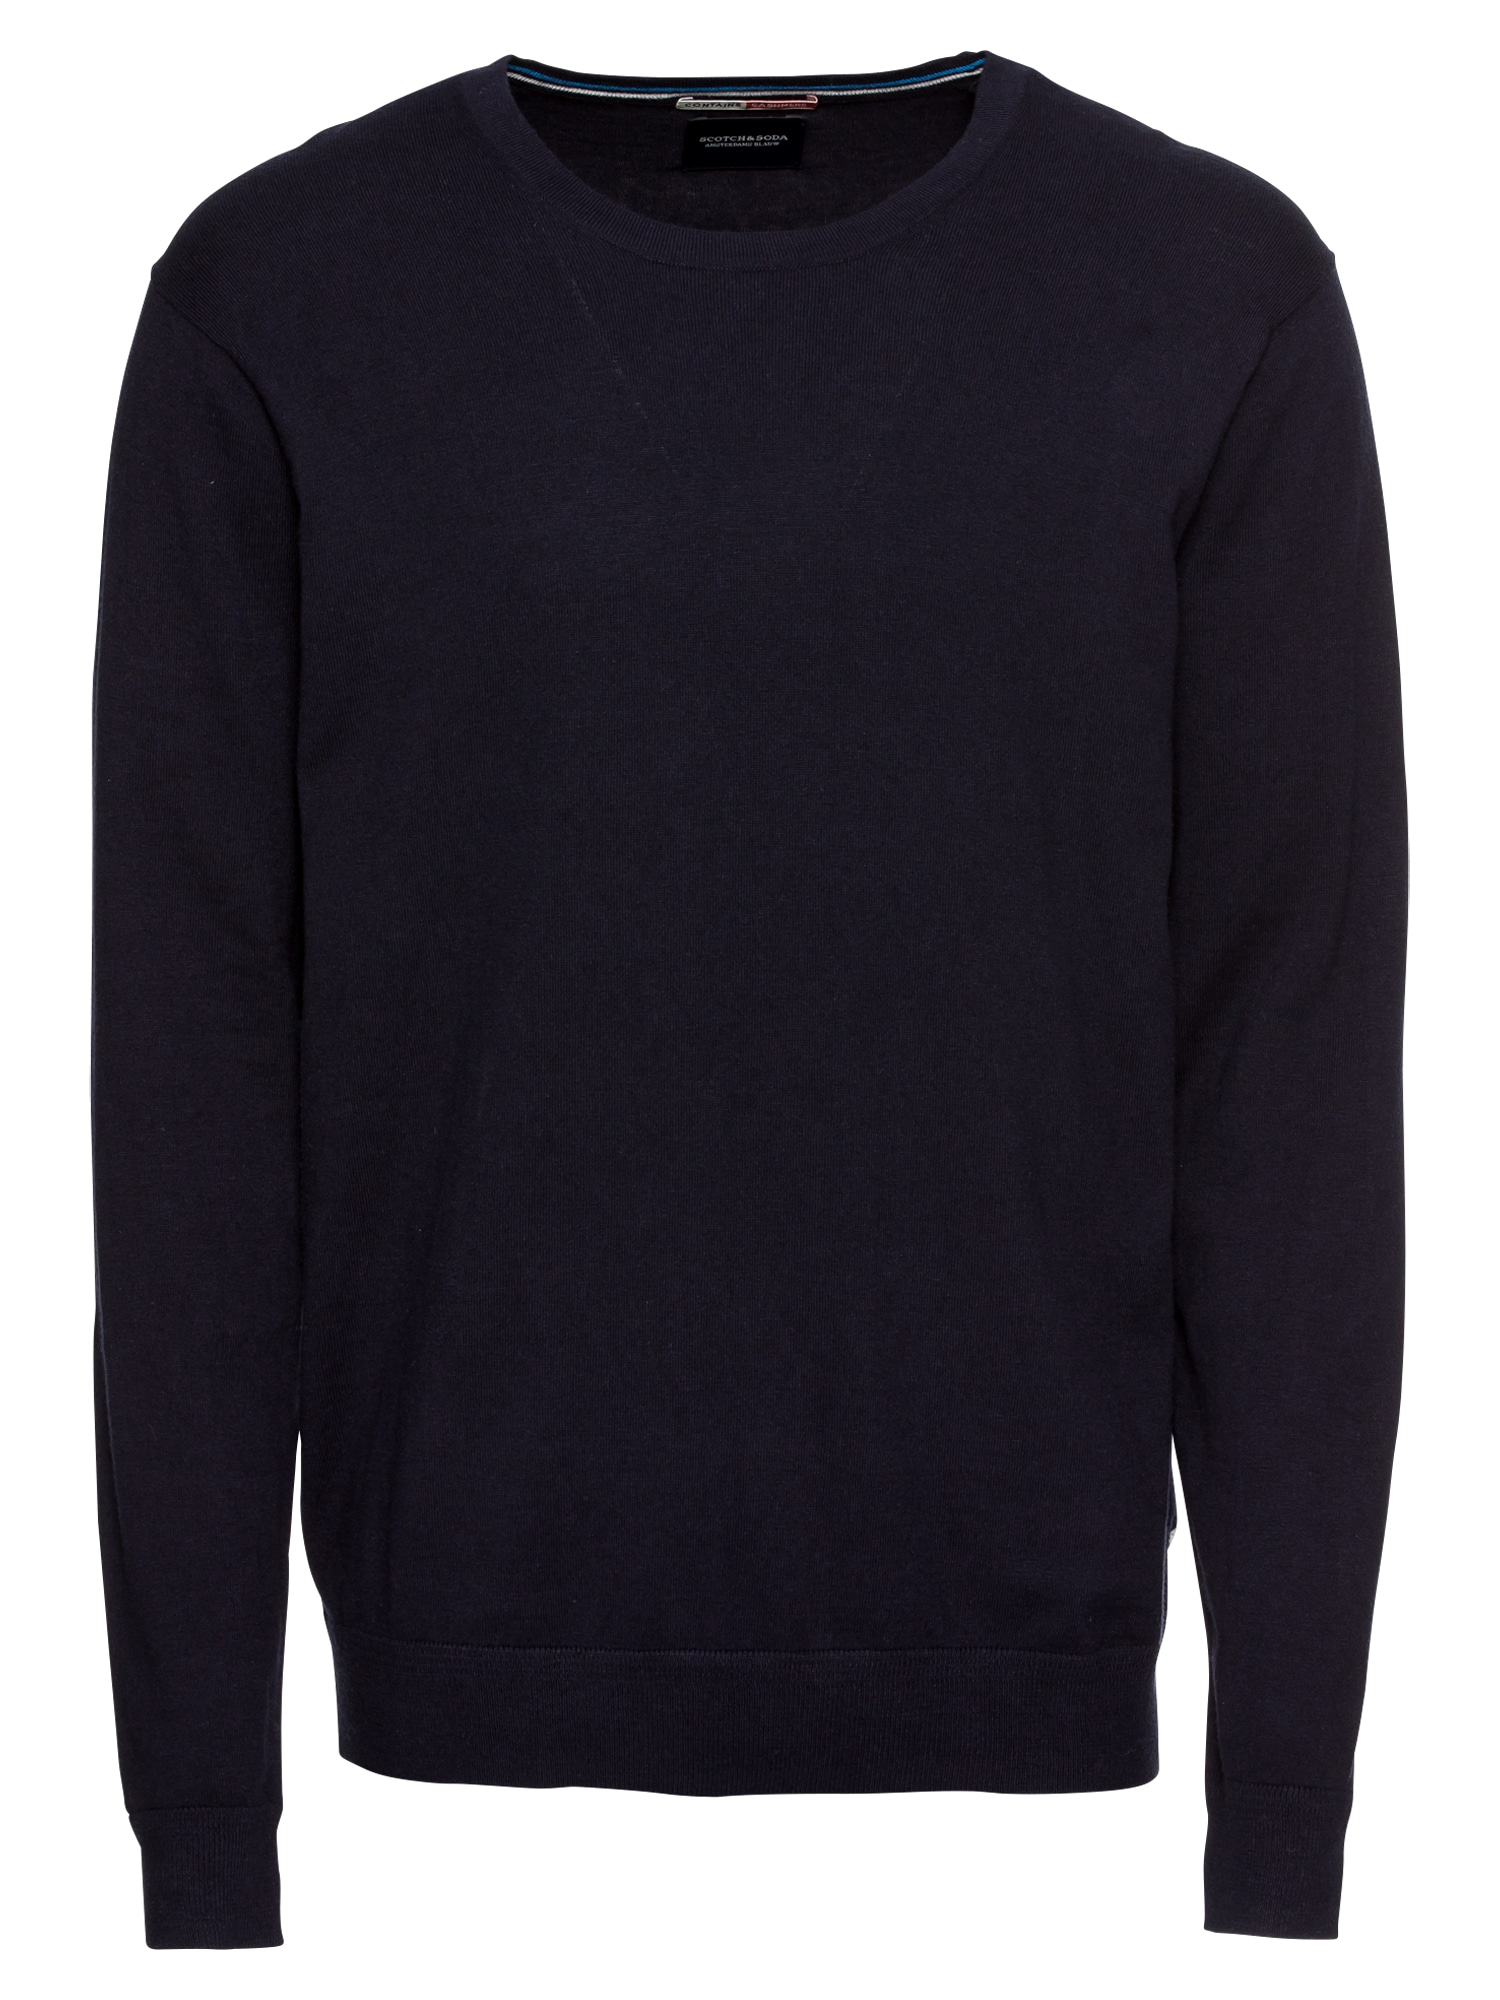 Svetr Ams Blauw cotton cashmere knit in regular fit tmavě modrá SCOTCH & SODA